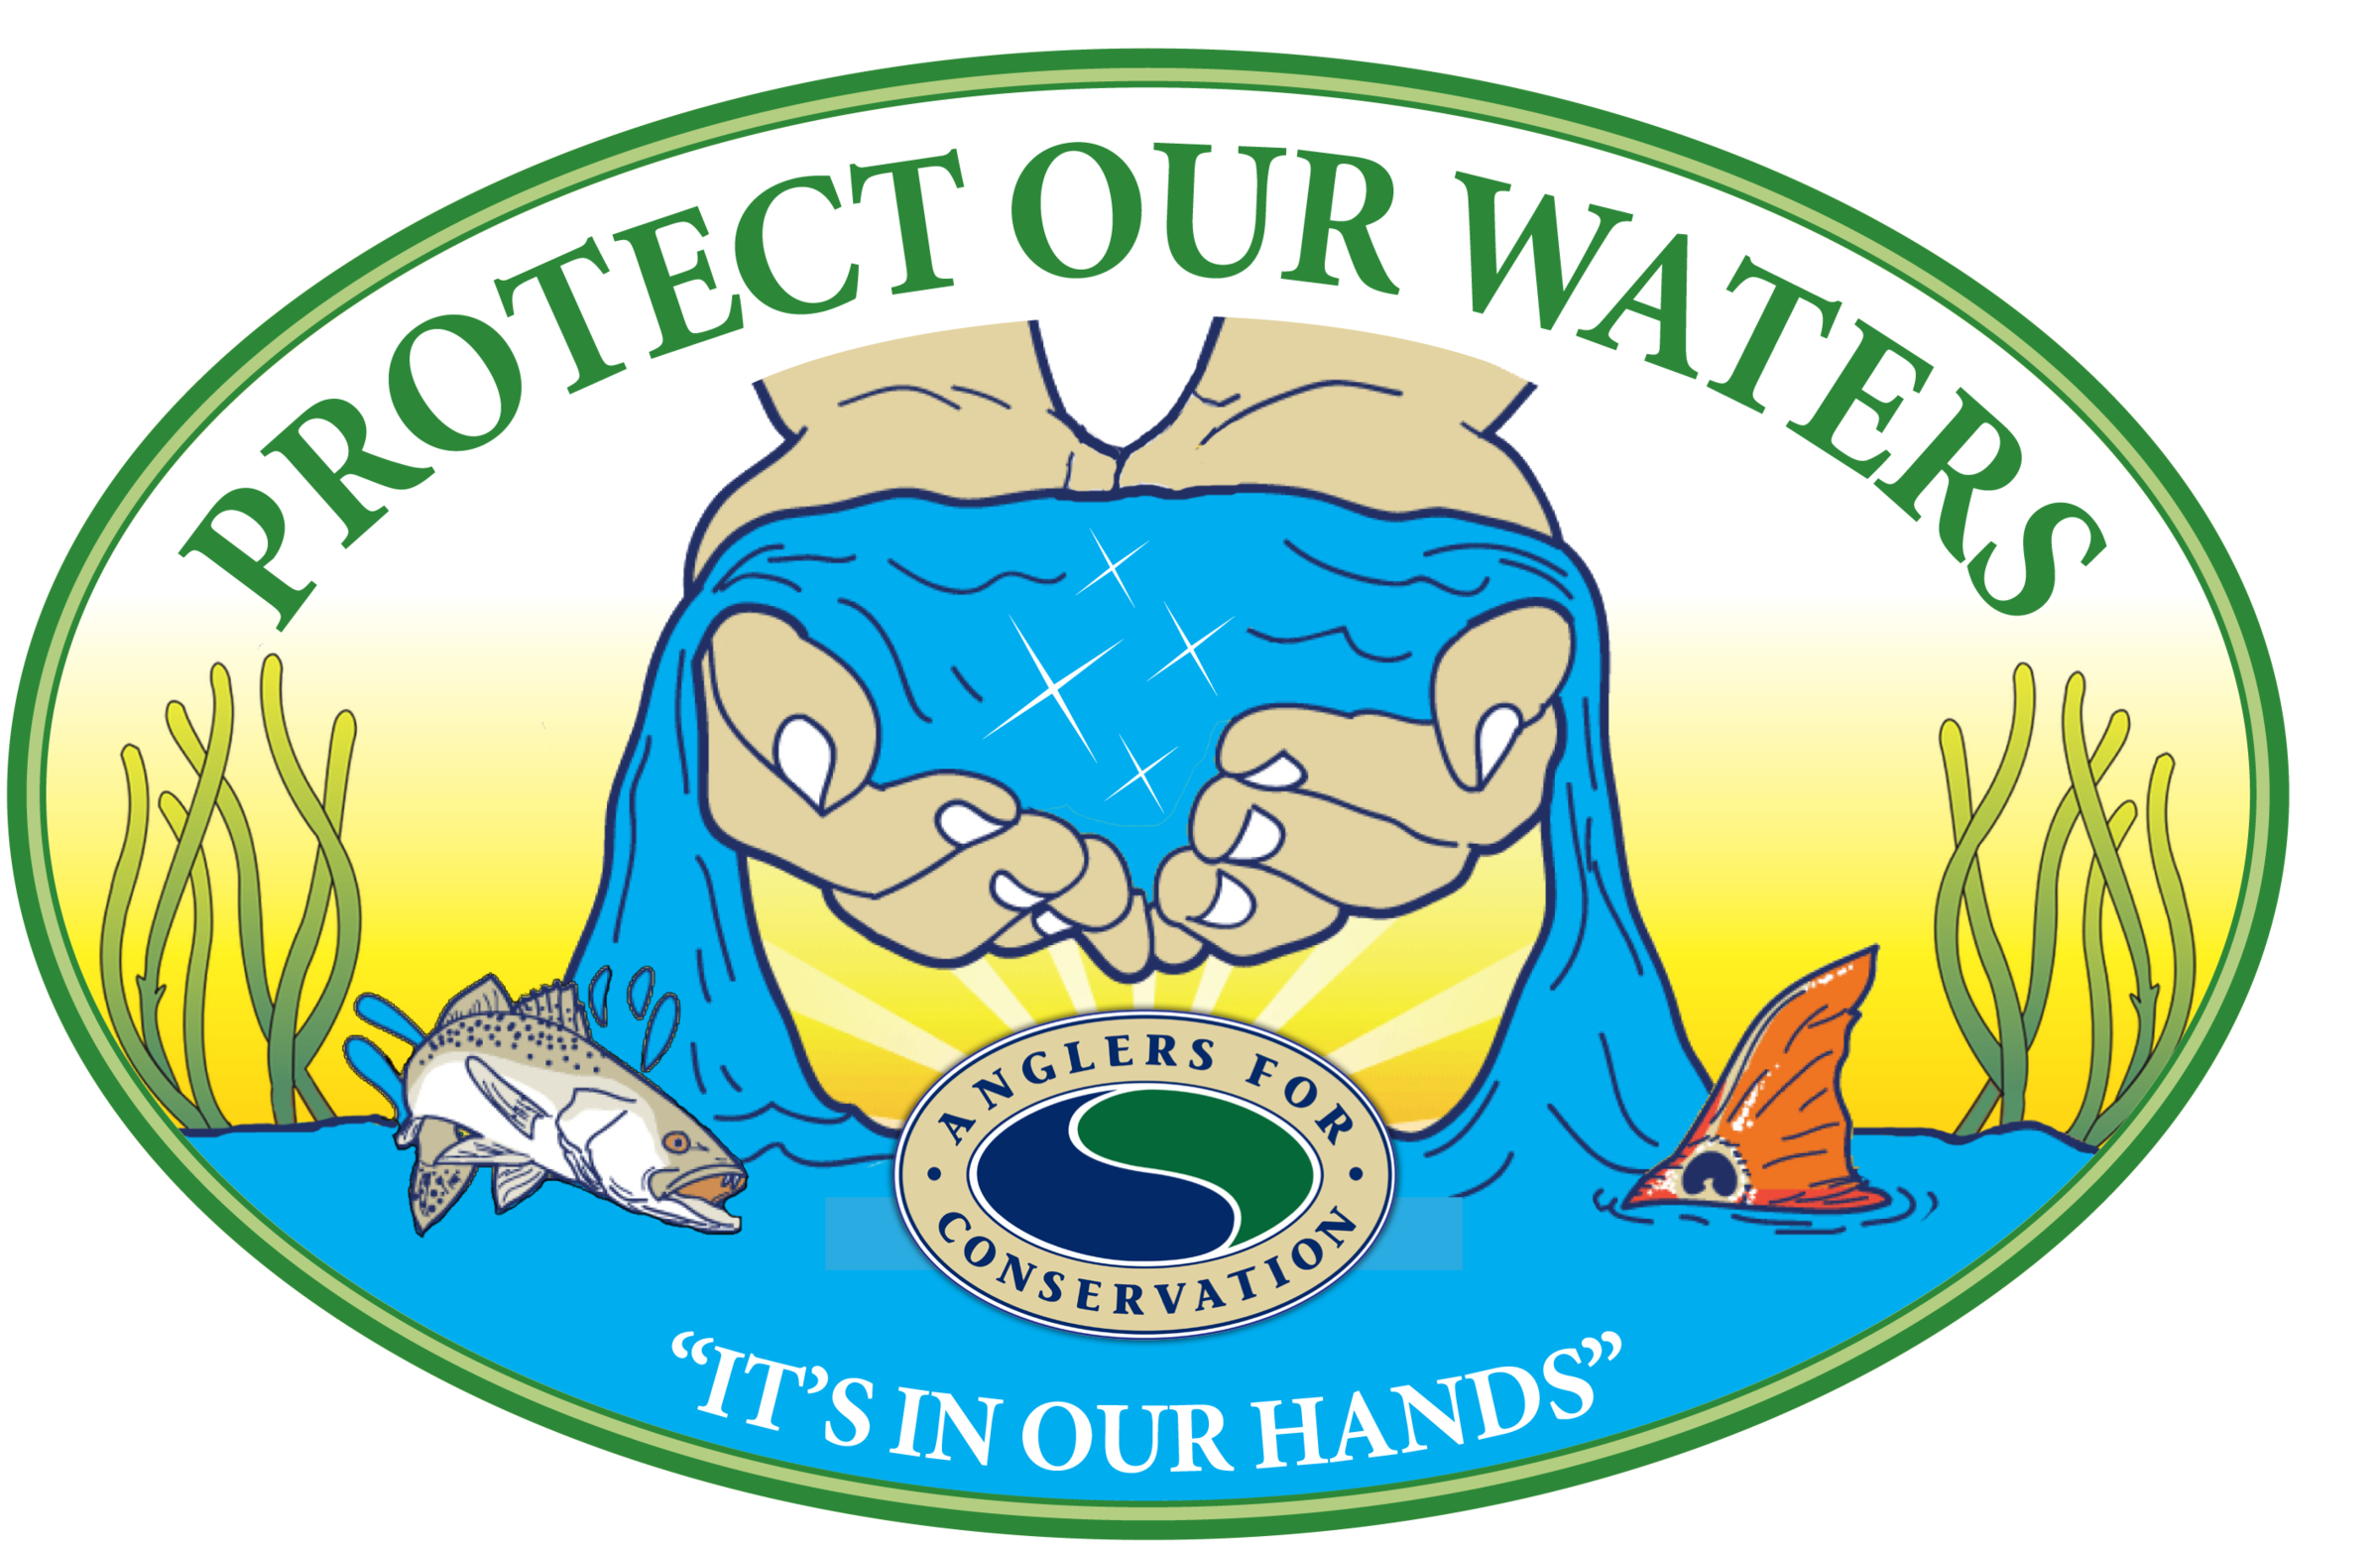 Fundraiser clipart mandatory. Protect our waters polynesian